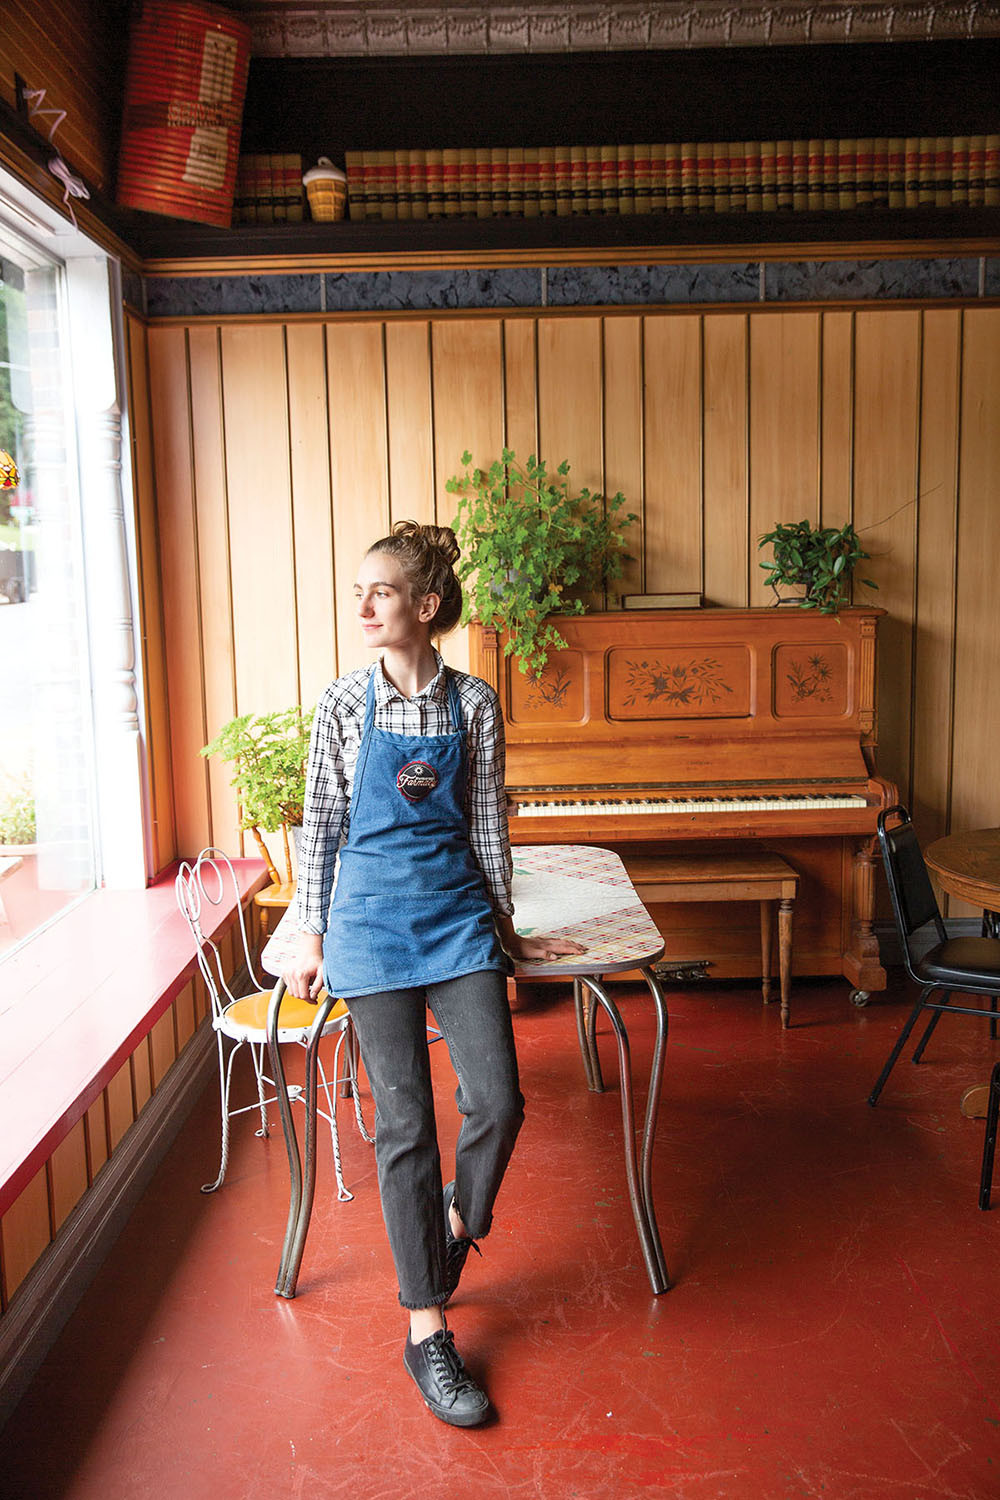 young blonde woman with bun in apron leans against table with player piano in background and stares out large front window